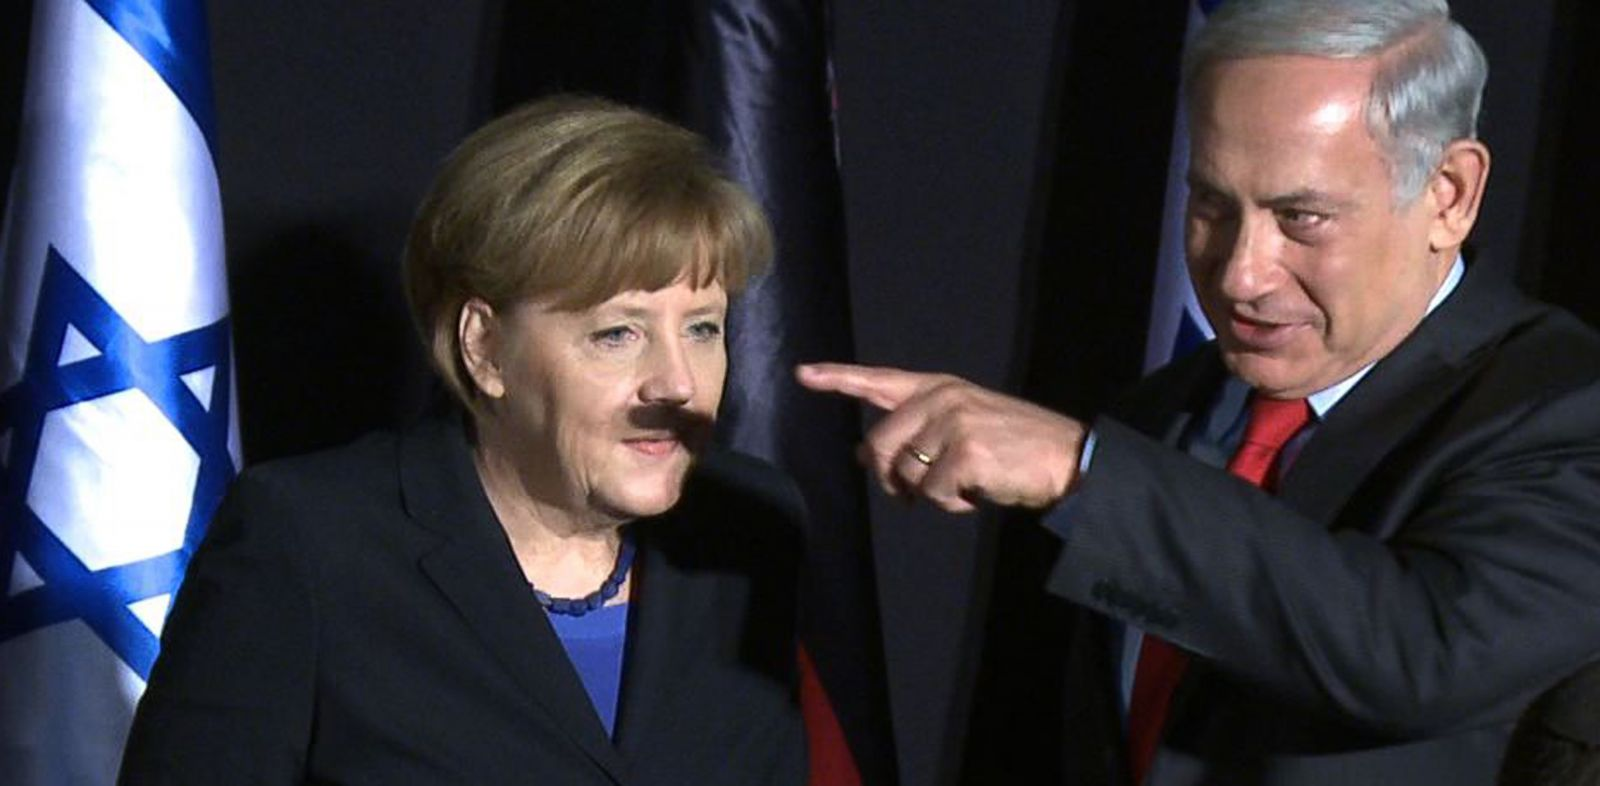 PHOTO: In this video grab, German Chancellor Angela Merkel and Israeli Prime Minister Benjamin Netanyahu gesture during a joint press conference at the King David hotel in Jerusalem, Feb. 25, 2014.